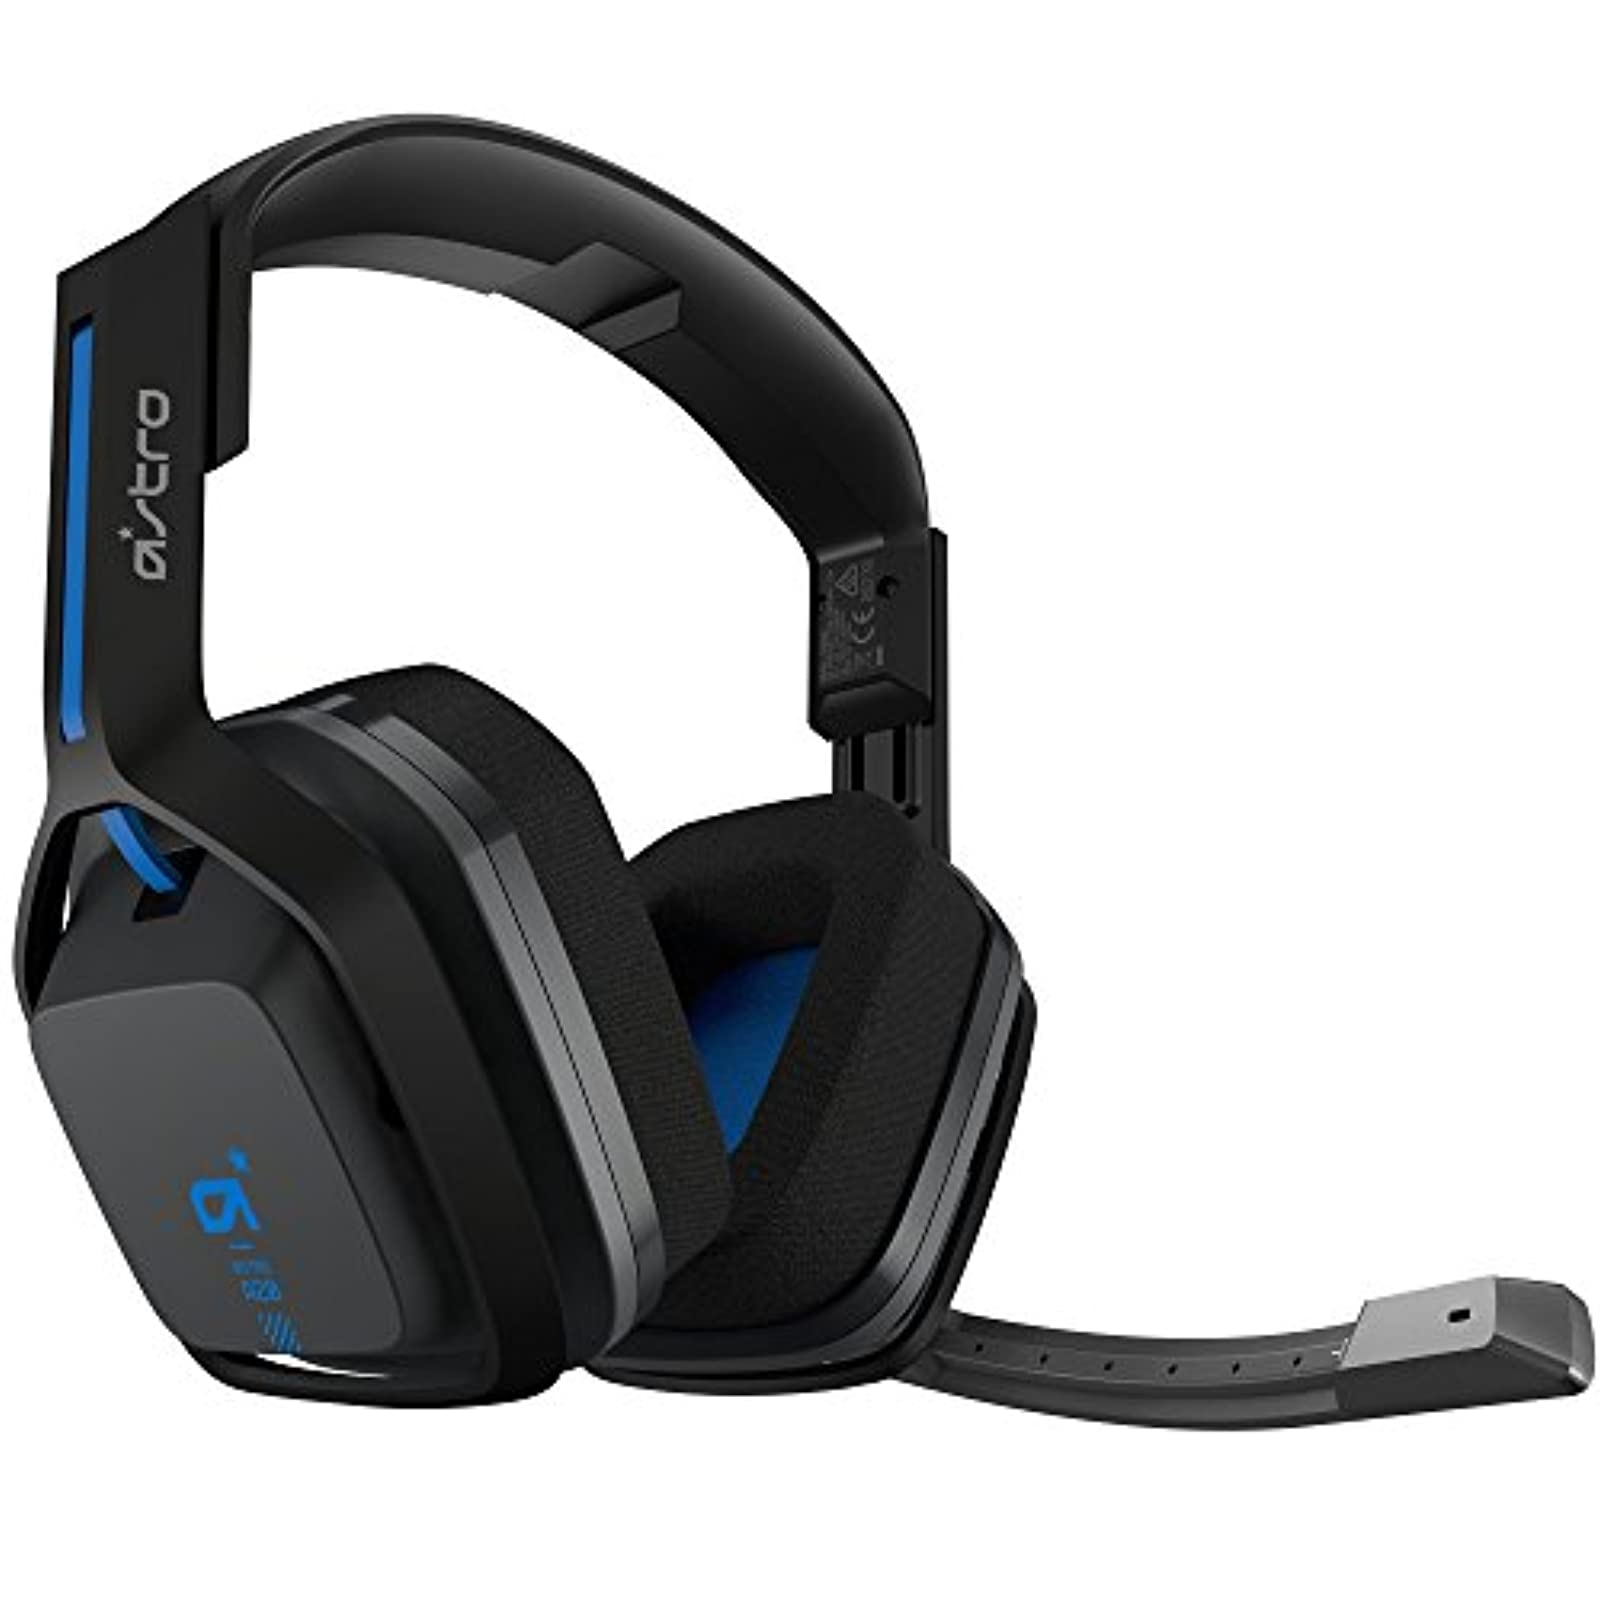 Astro Gaming A20 Wireless Headset Black/blue For PlayStation 4 PS4 Microphone Mi